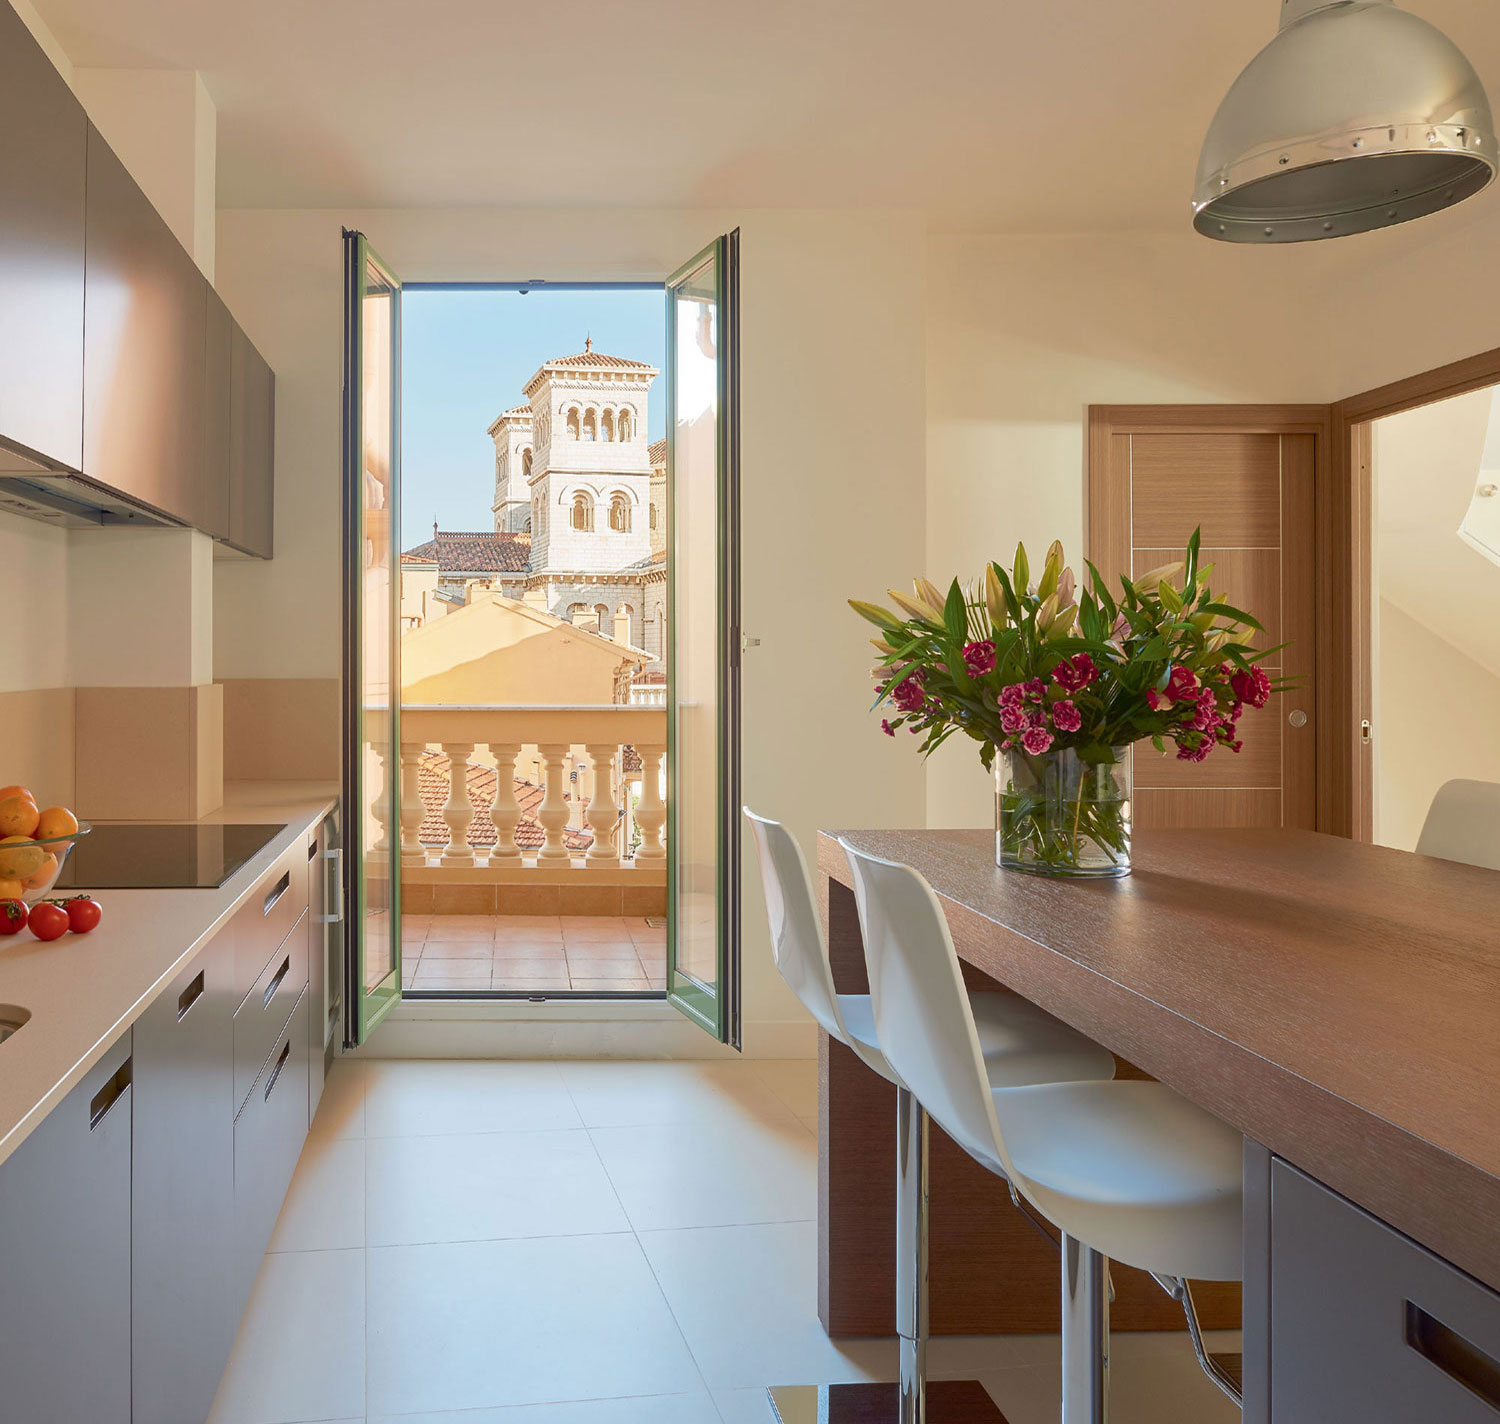 The kitchen level is surrounded by a balcony offering romantic views of the harbor below.